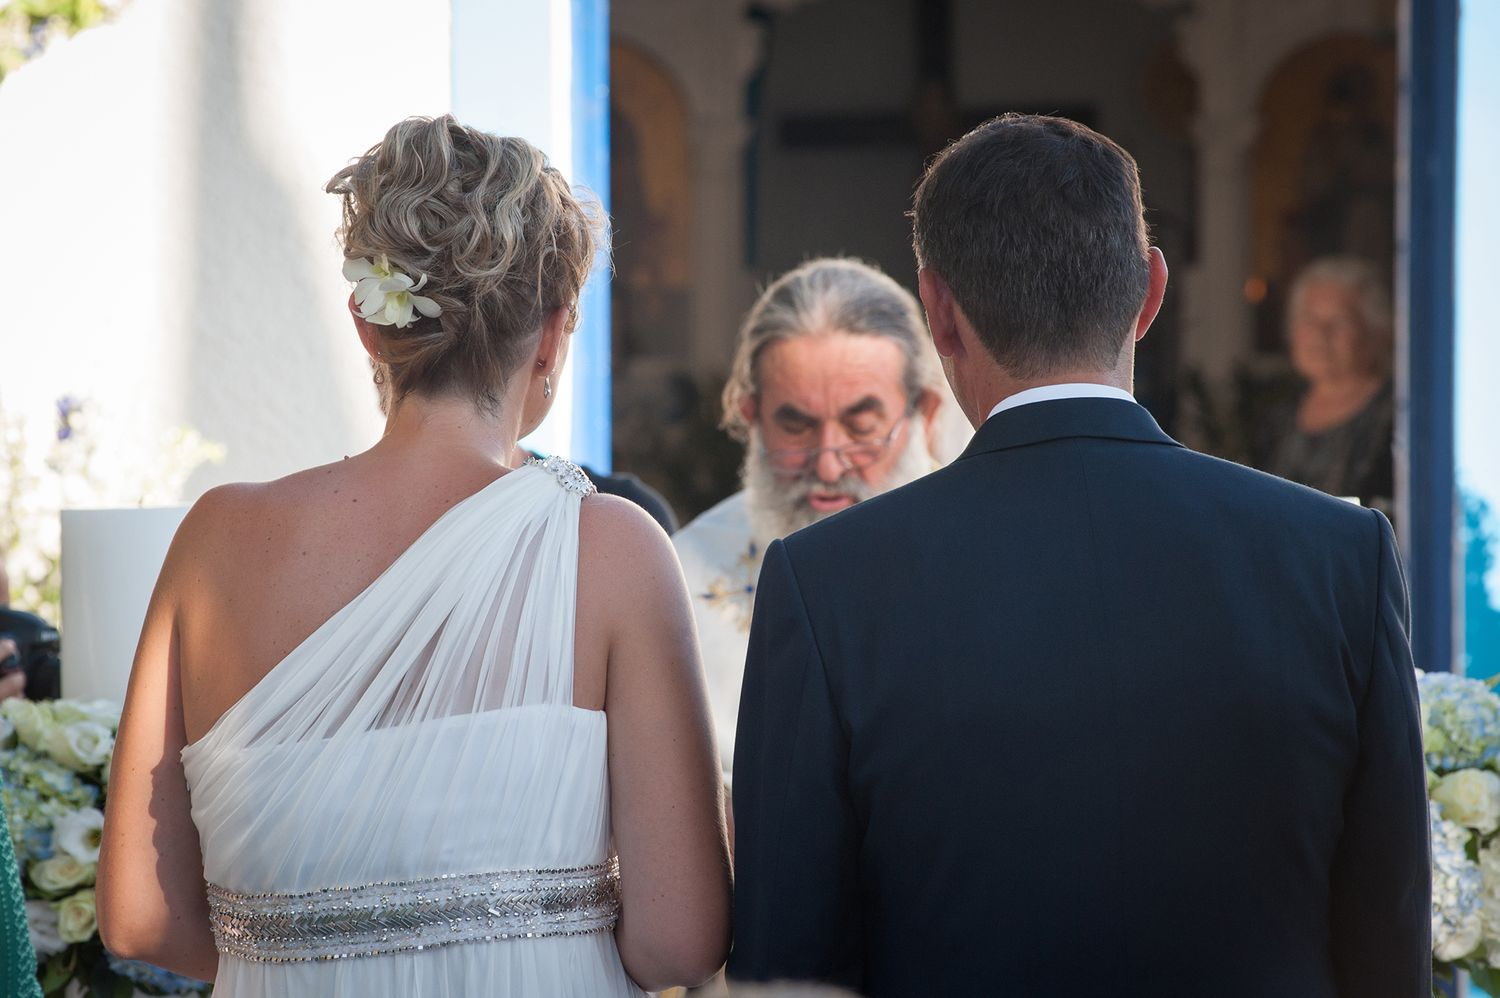 priest among couples shoulders during wedding ceremony